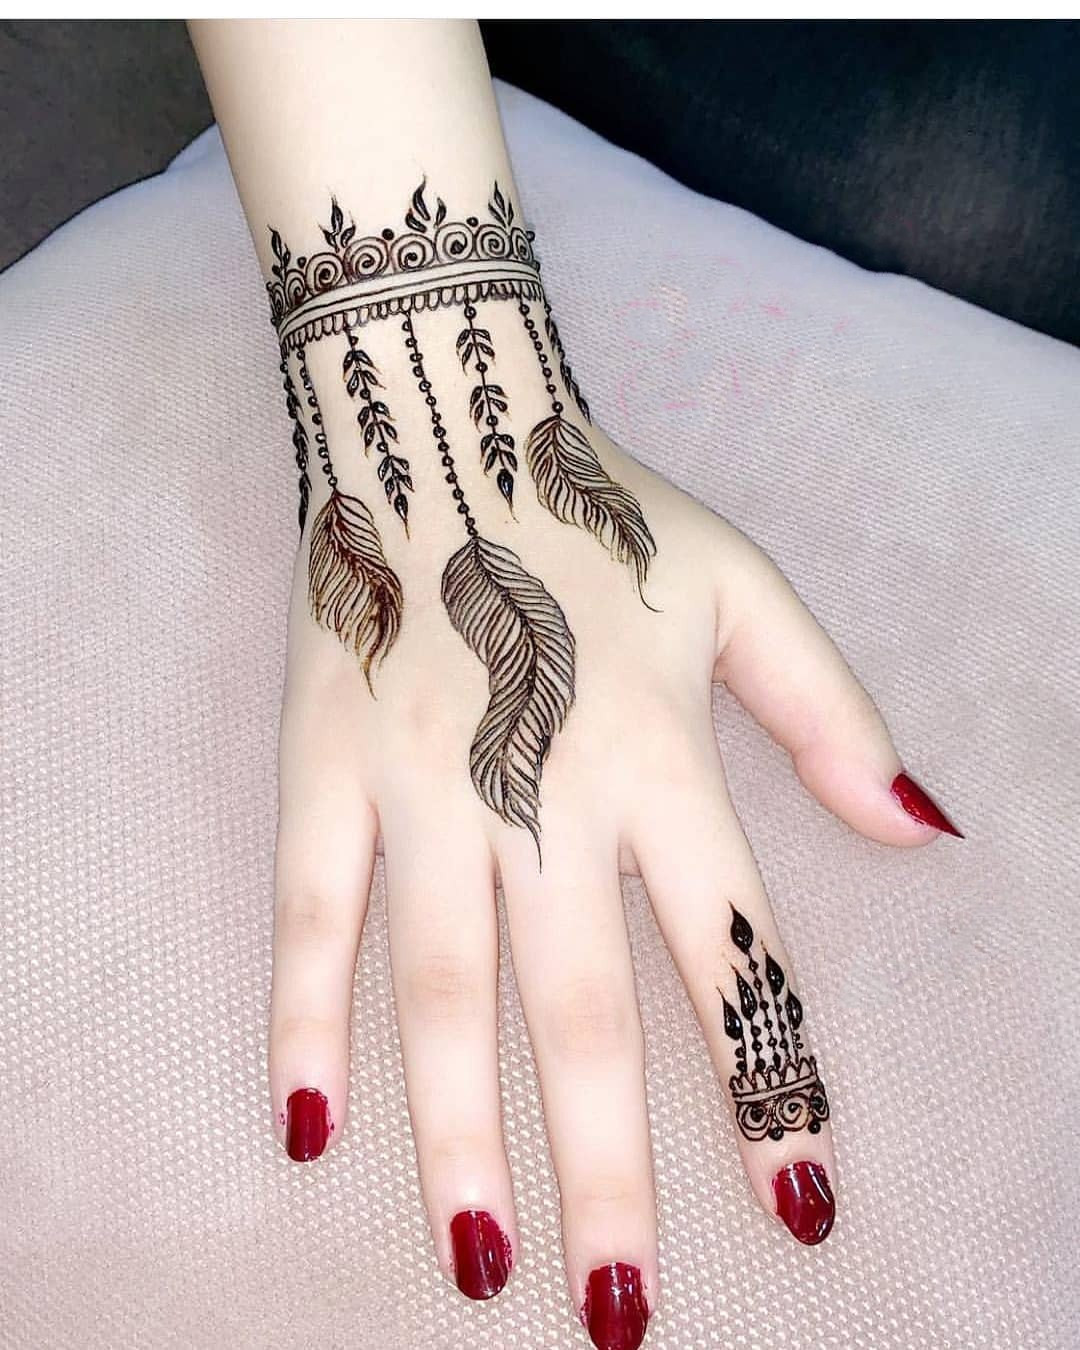 42 Trendy Henna Tattoo Design Ideas to Try,henna tattoo meaning,henna tattoo care,are henna tattoos permanent